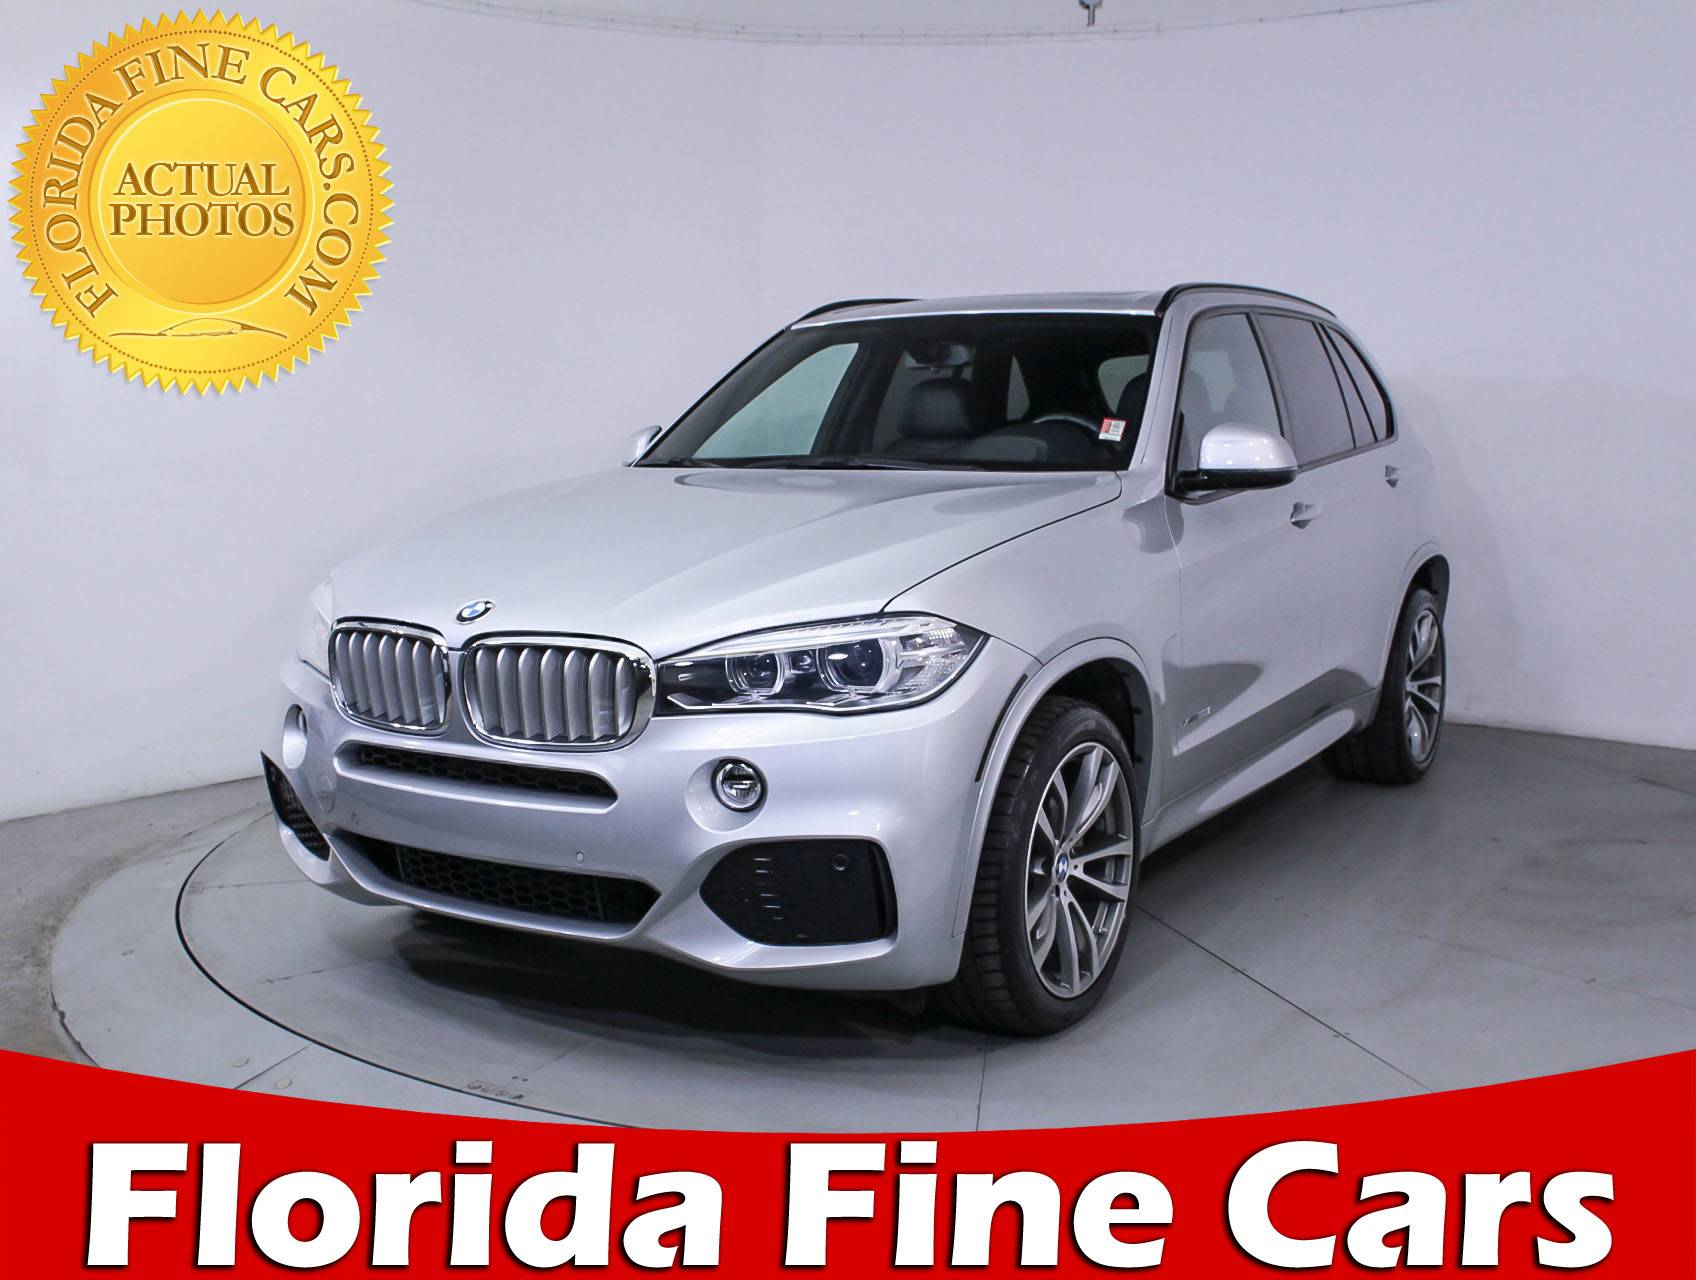 Used 2014 BMW X5 XDRIVE50I M SPORT SUV For Sale In MIAMI FL